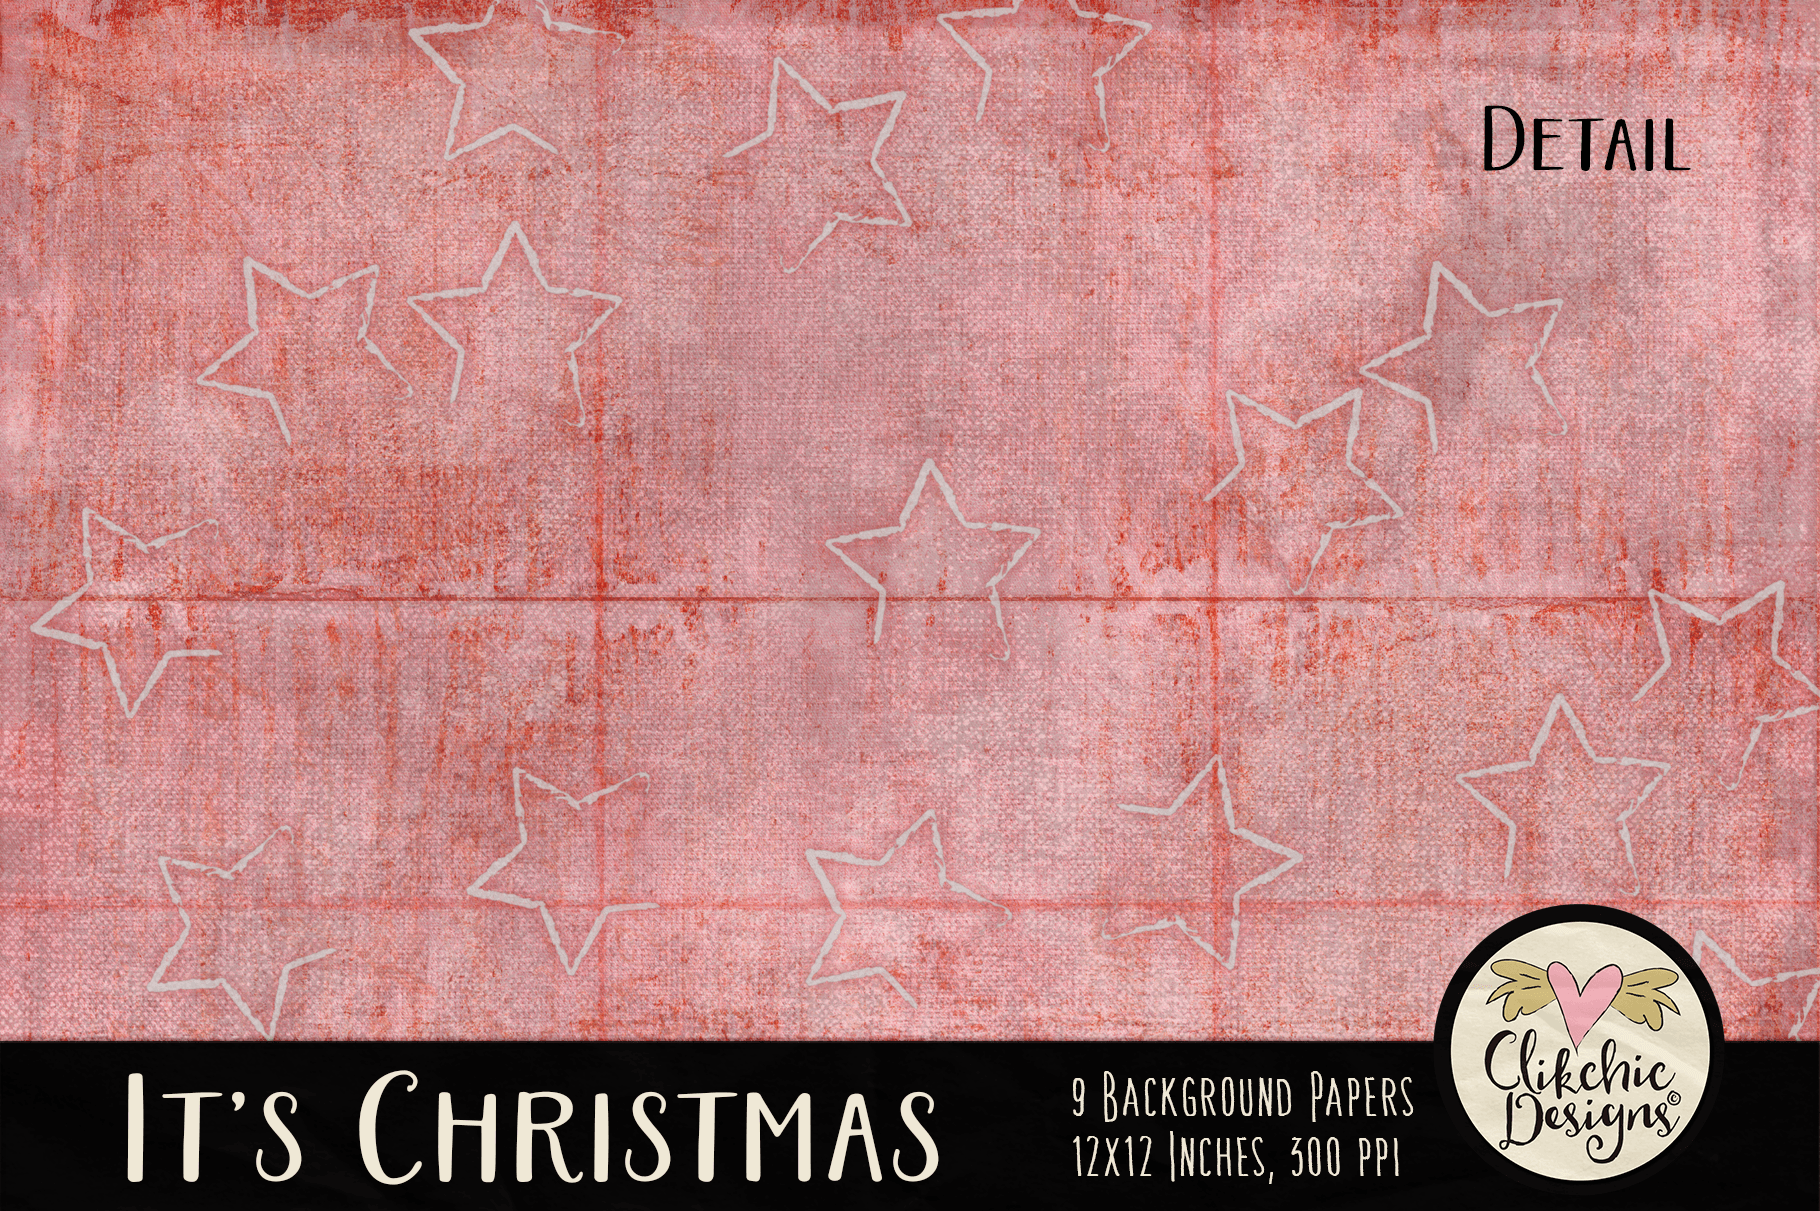 Christmas Backgrounds - Christmas Digital Papers Textures example image 4